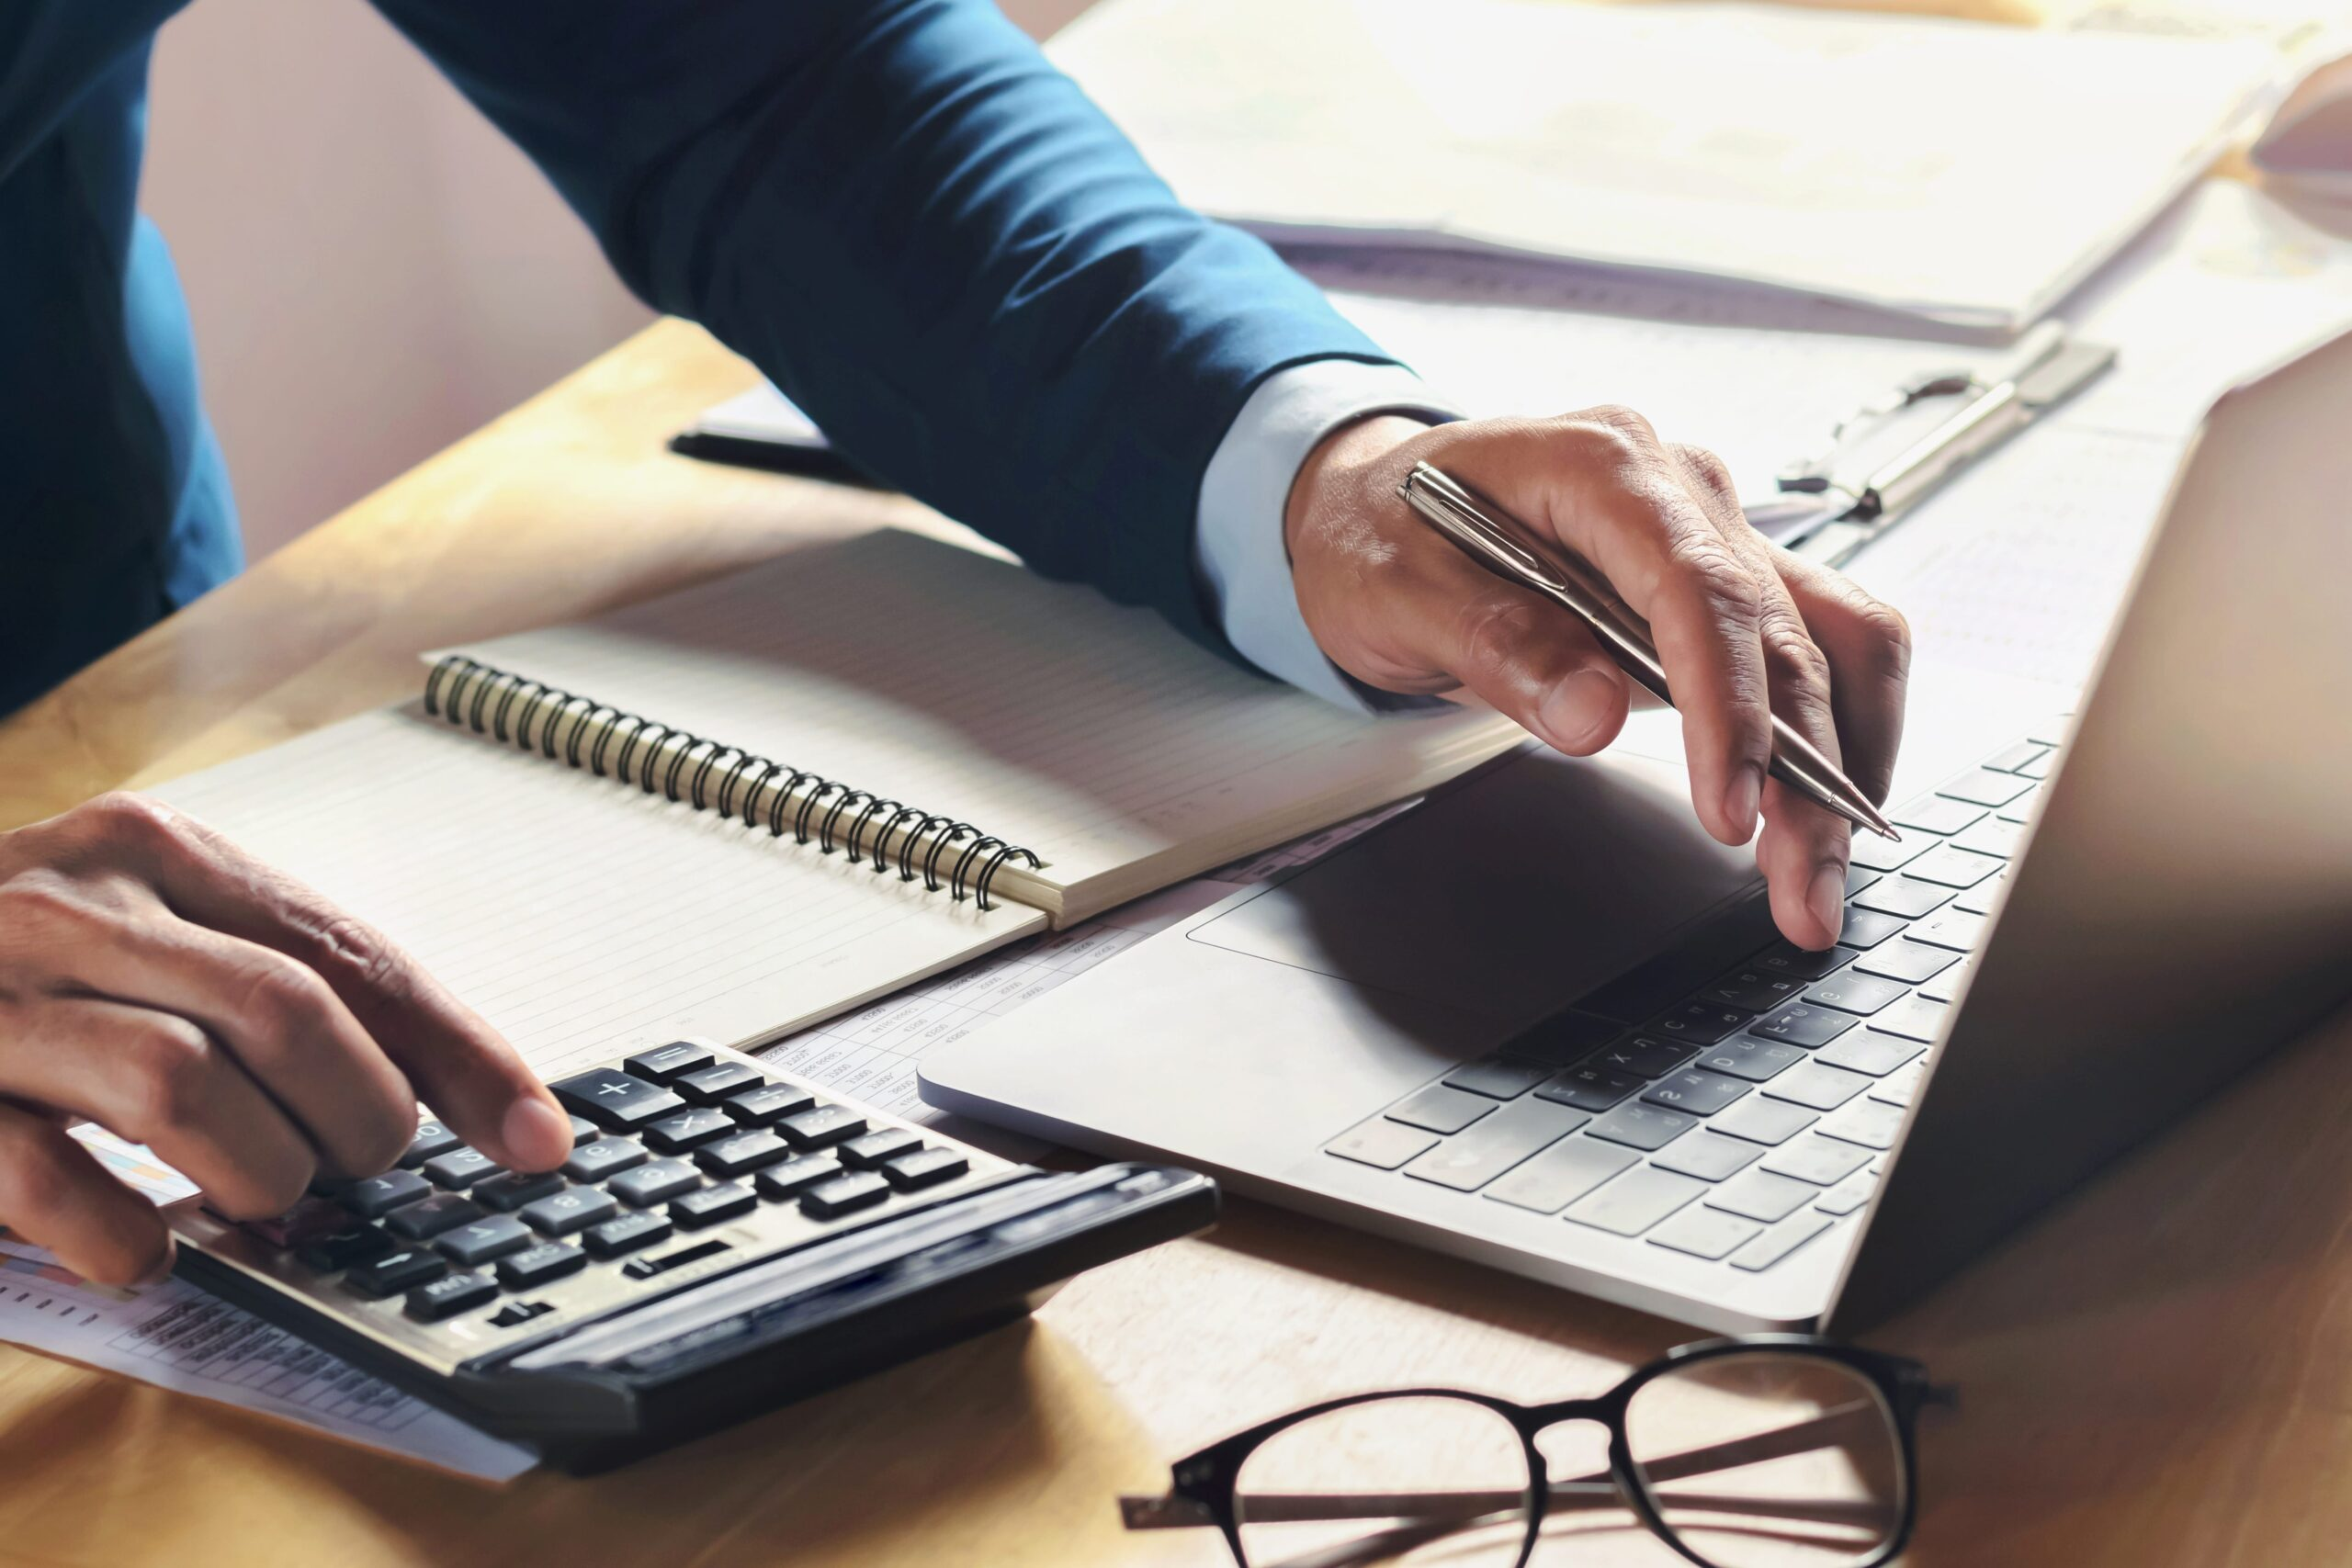 https://doradcy365.pl/wp-content/uploads/2020/11/businessman-working-desk-with-using-calculator-computer-office-concept-accounting-finance-min-1-scaled.jpg